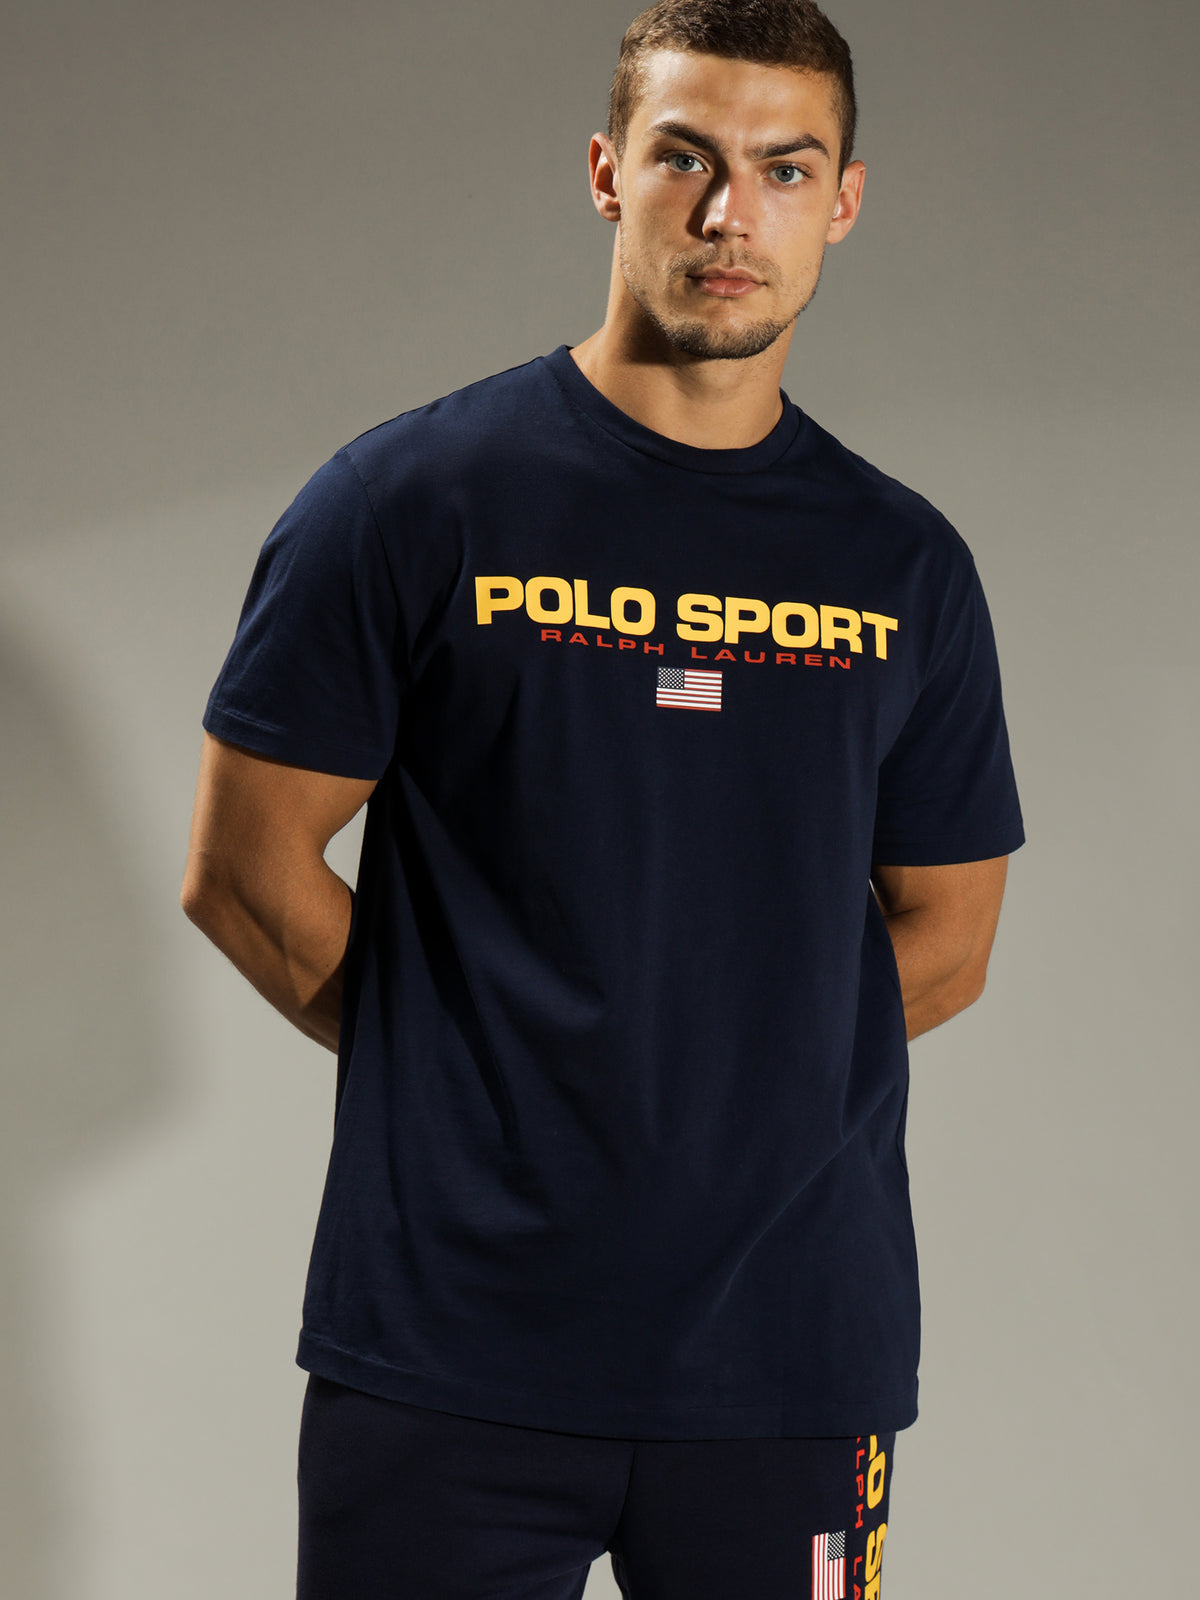 Classic Fit Polo Sports T-Shirt in Navy